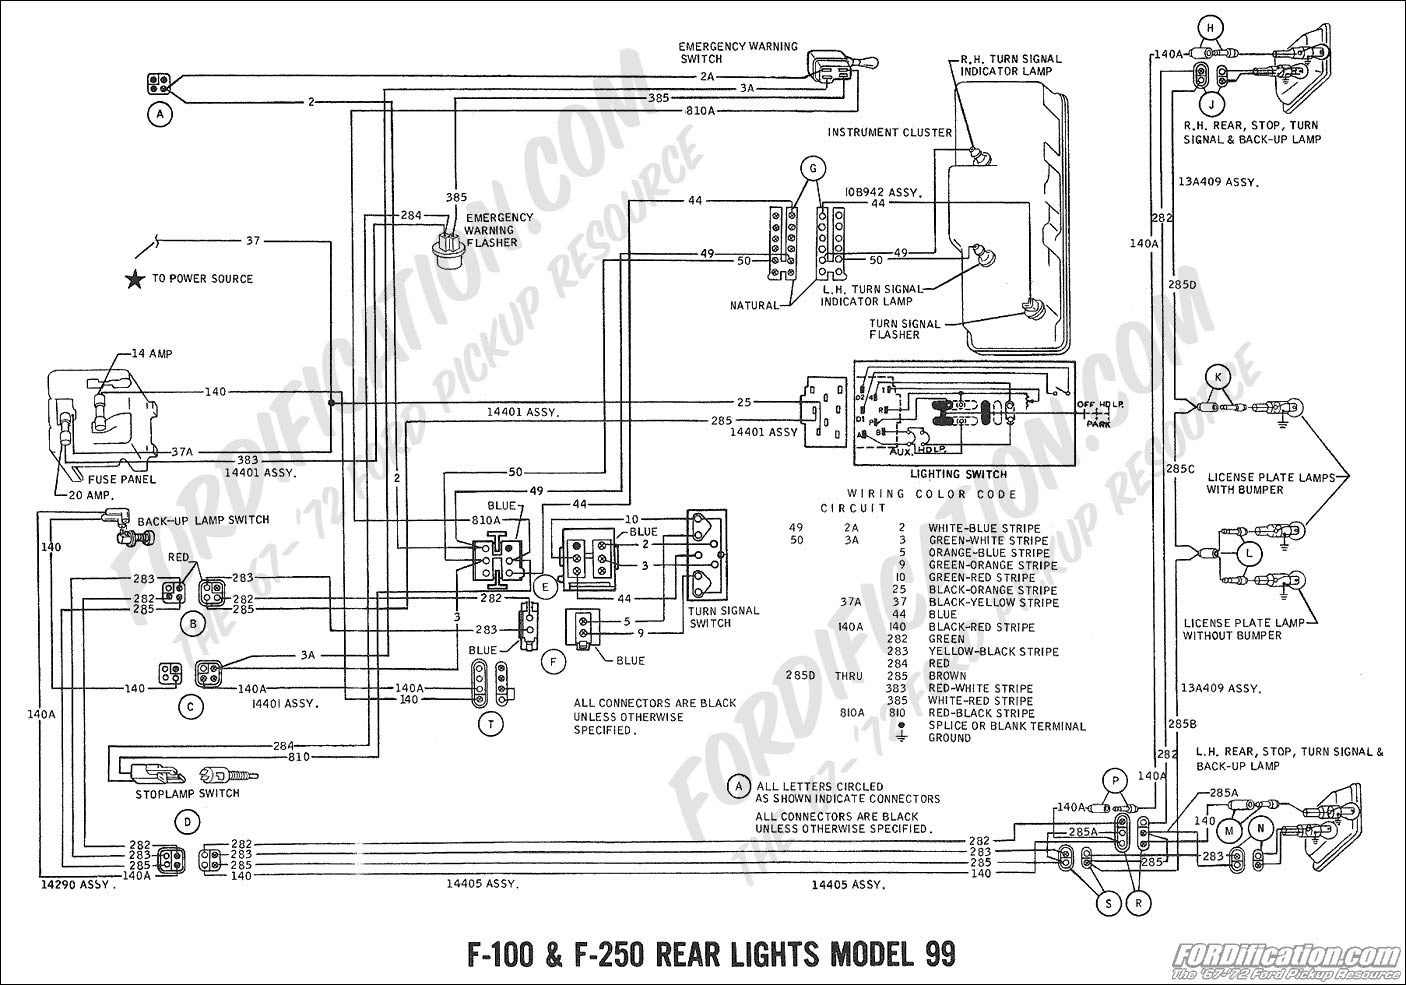 ford truck technical drawings and schematics section h 1977 Ford Turn Signal Switch 1973 Ford Turn Signal Switch